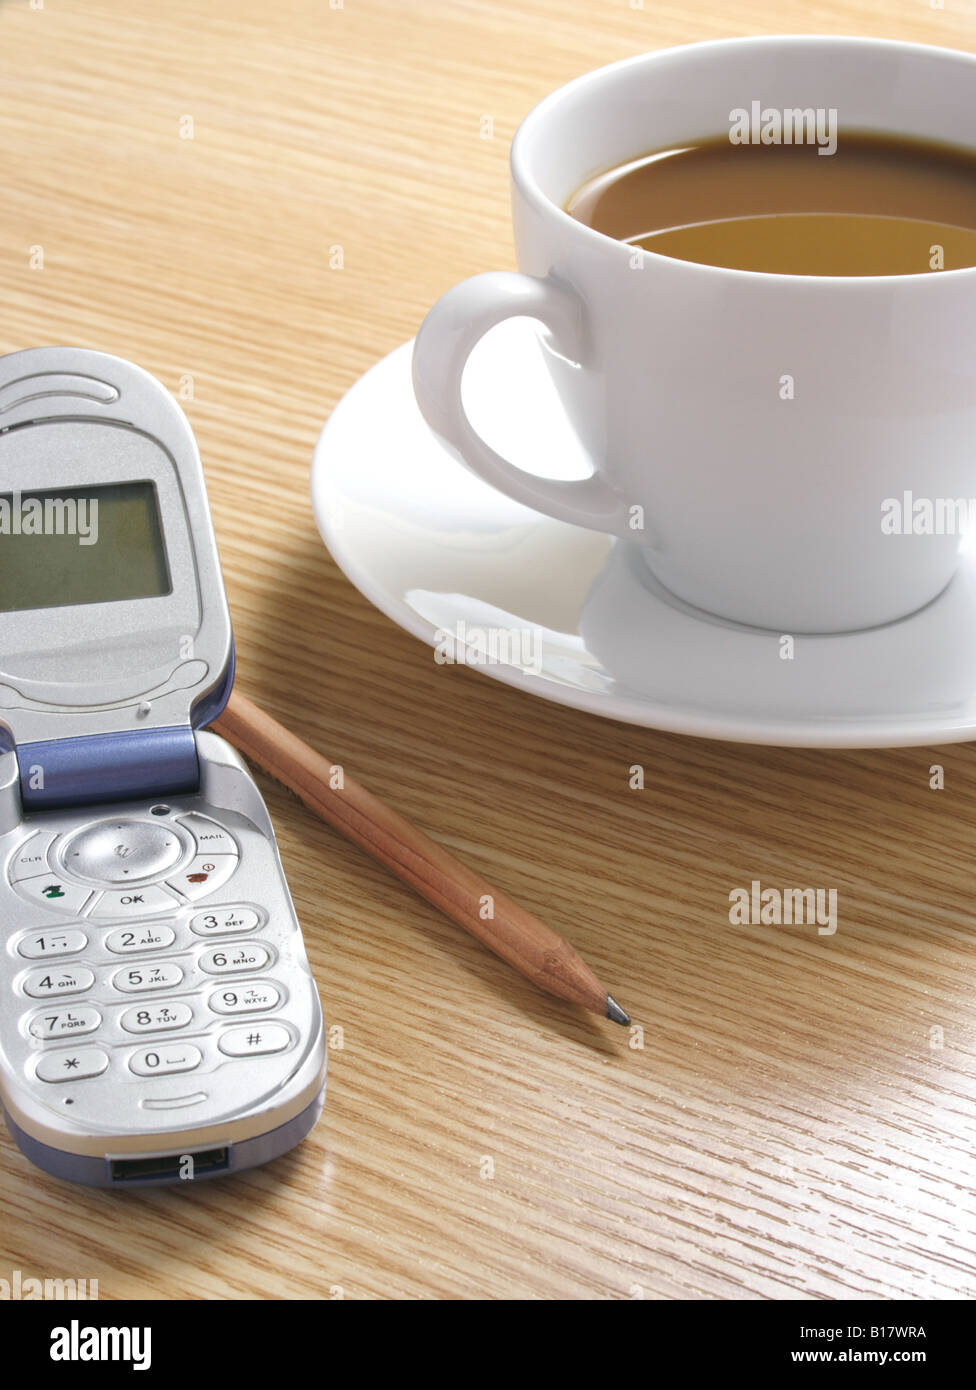 Coffee Pencil and Cellphone on Desk Stock Photo